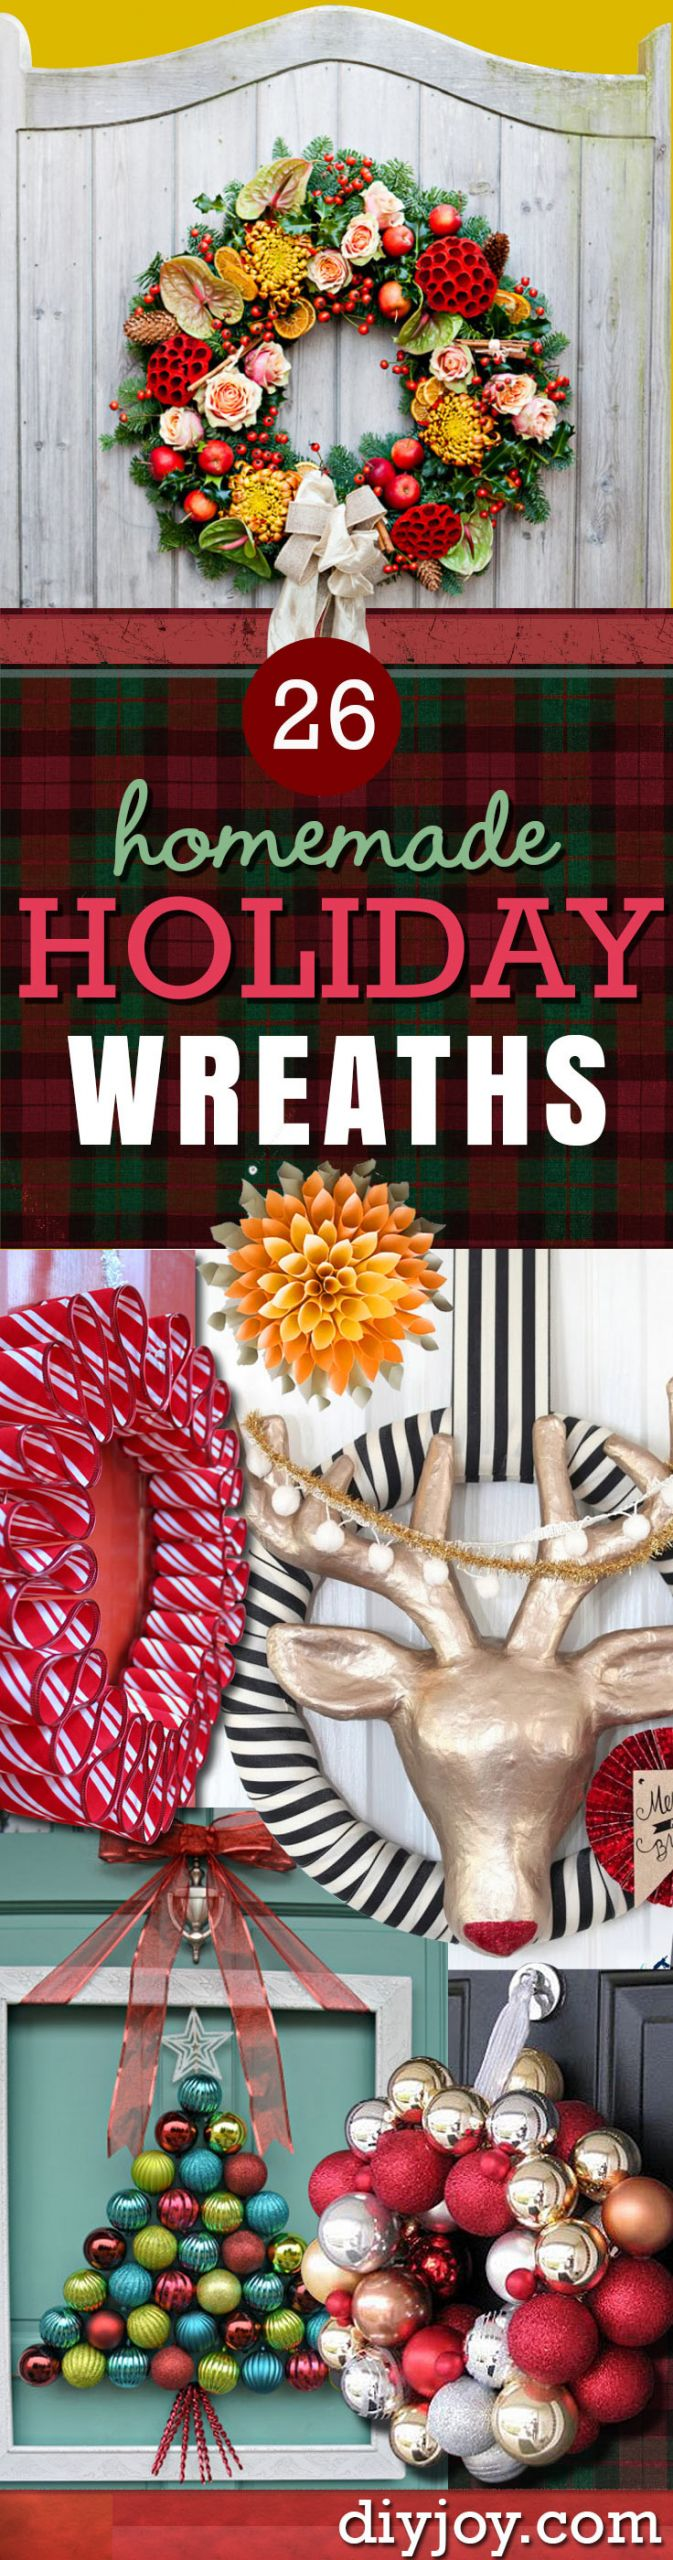 DIY Christmas Decorations Pinterest  26 Most Beautiful DIY Holiday Wreaths Ever